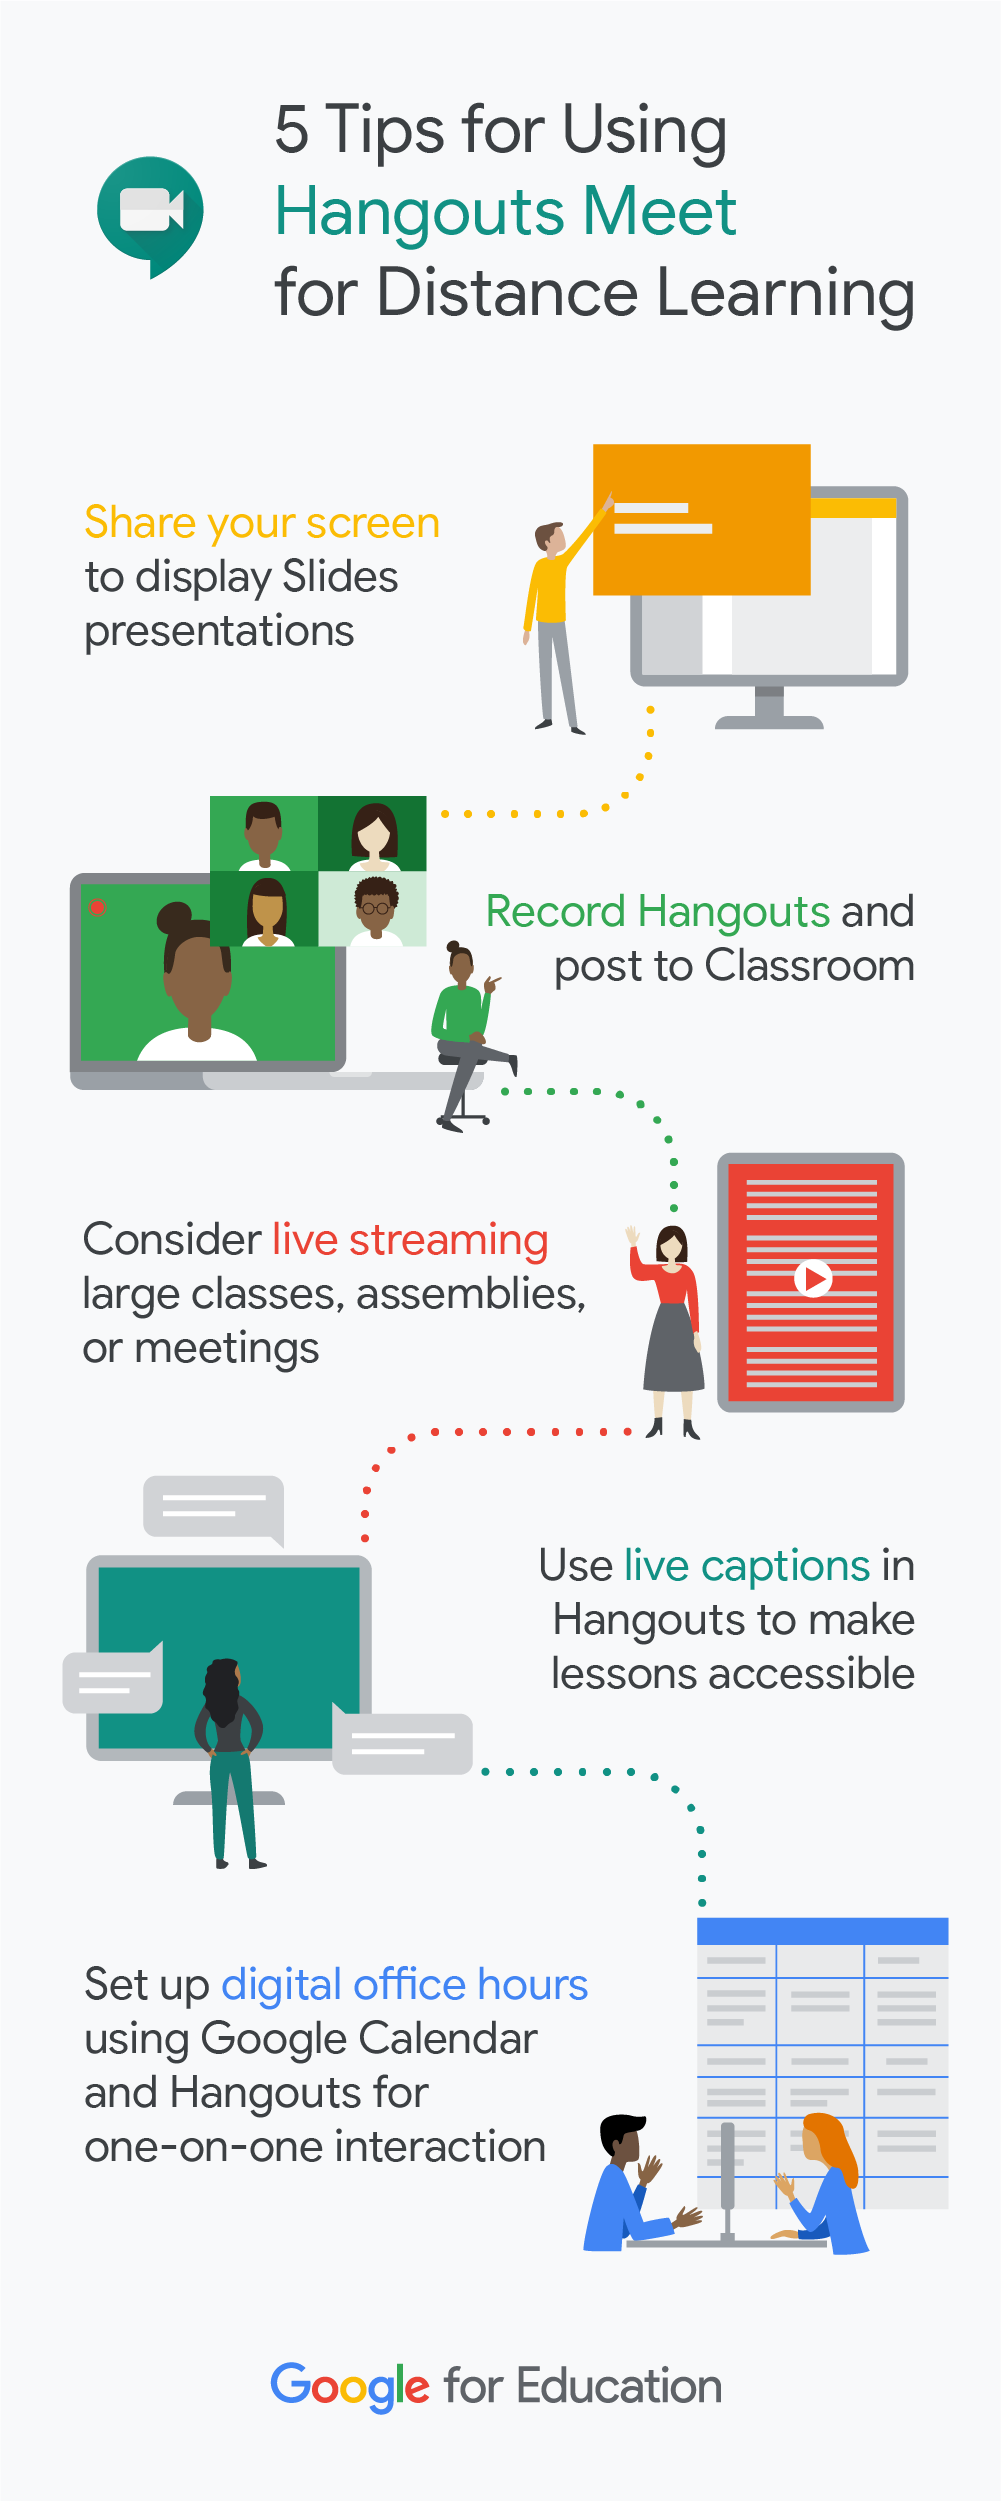 Tips for using Hangouts Meet for distance learning in 2020